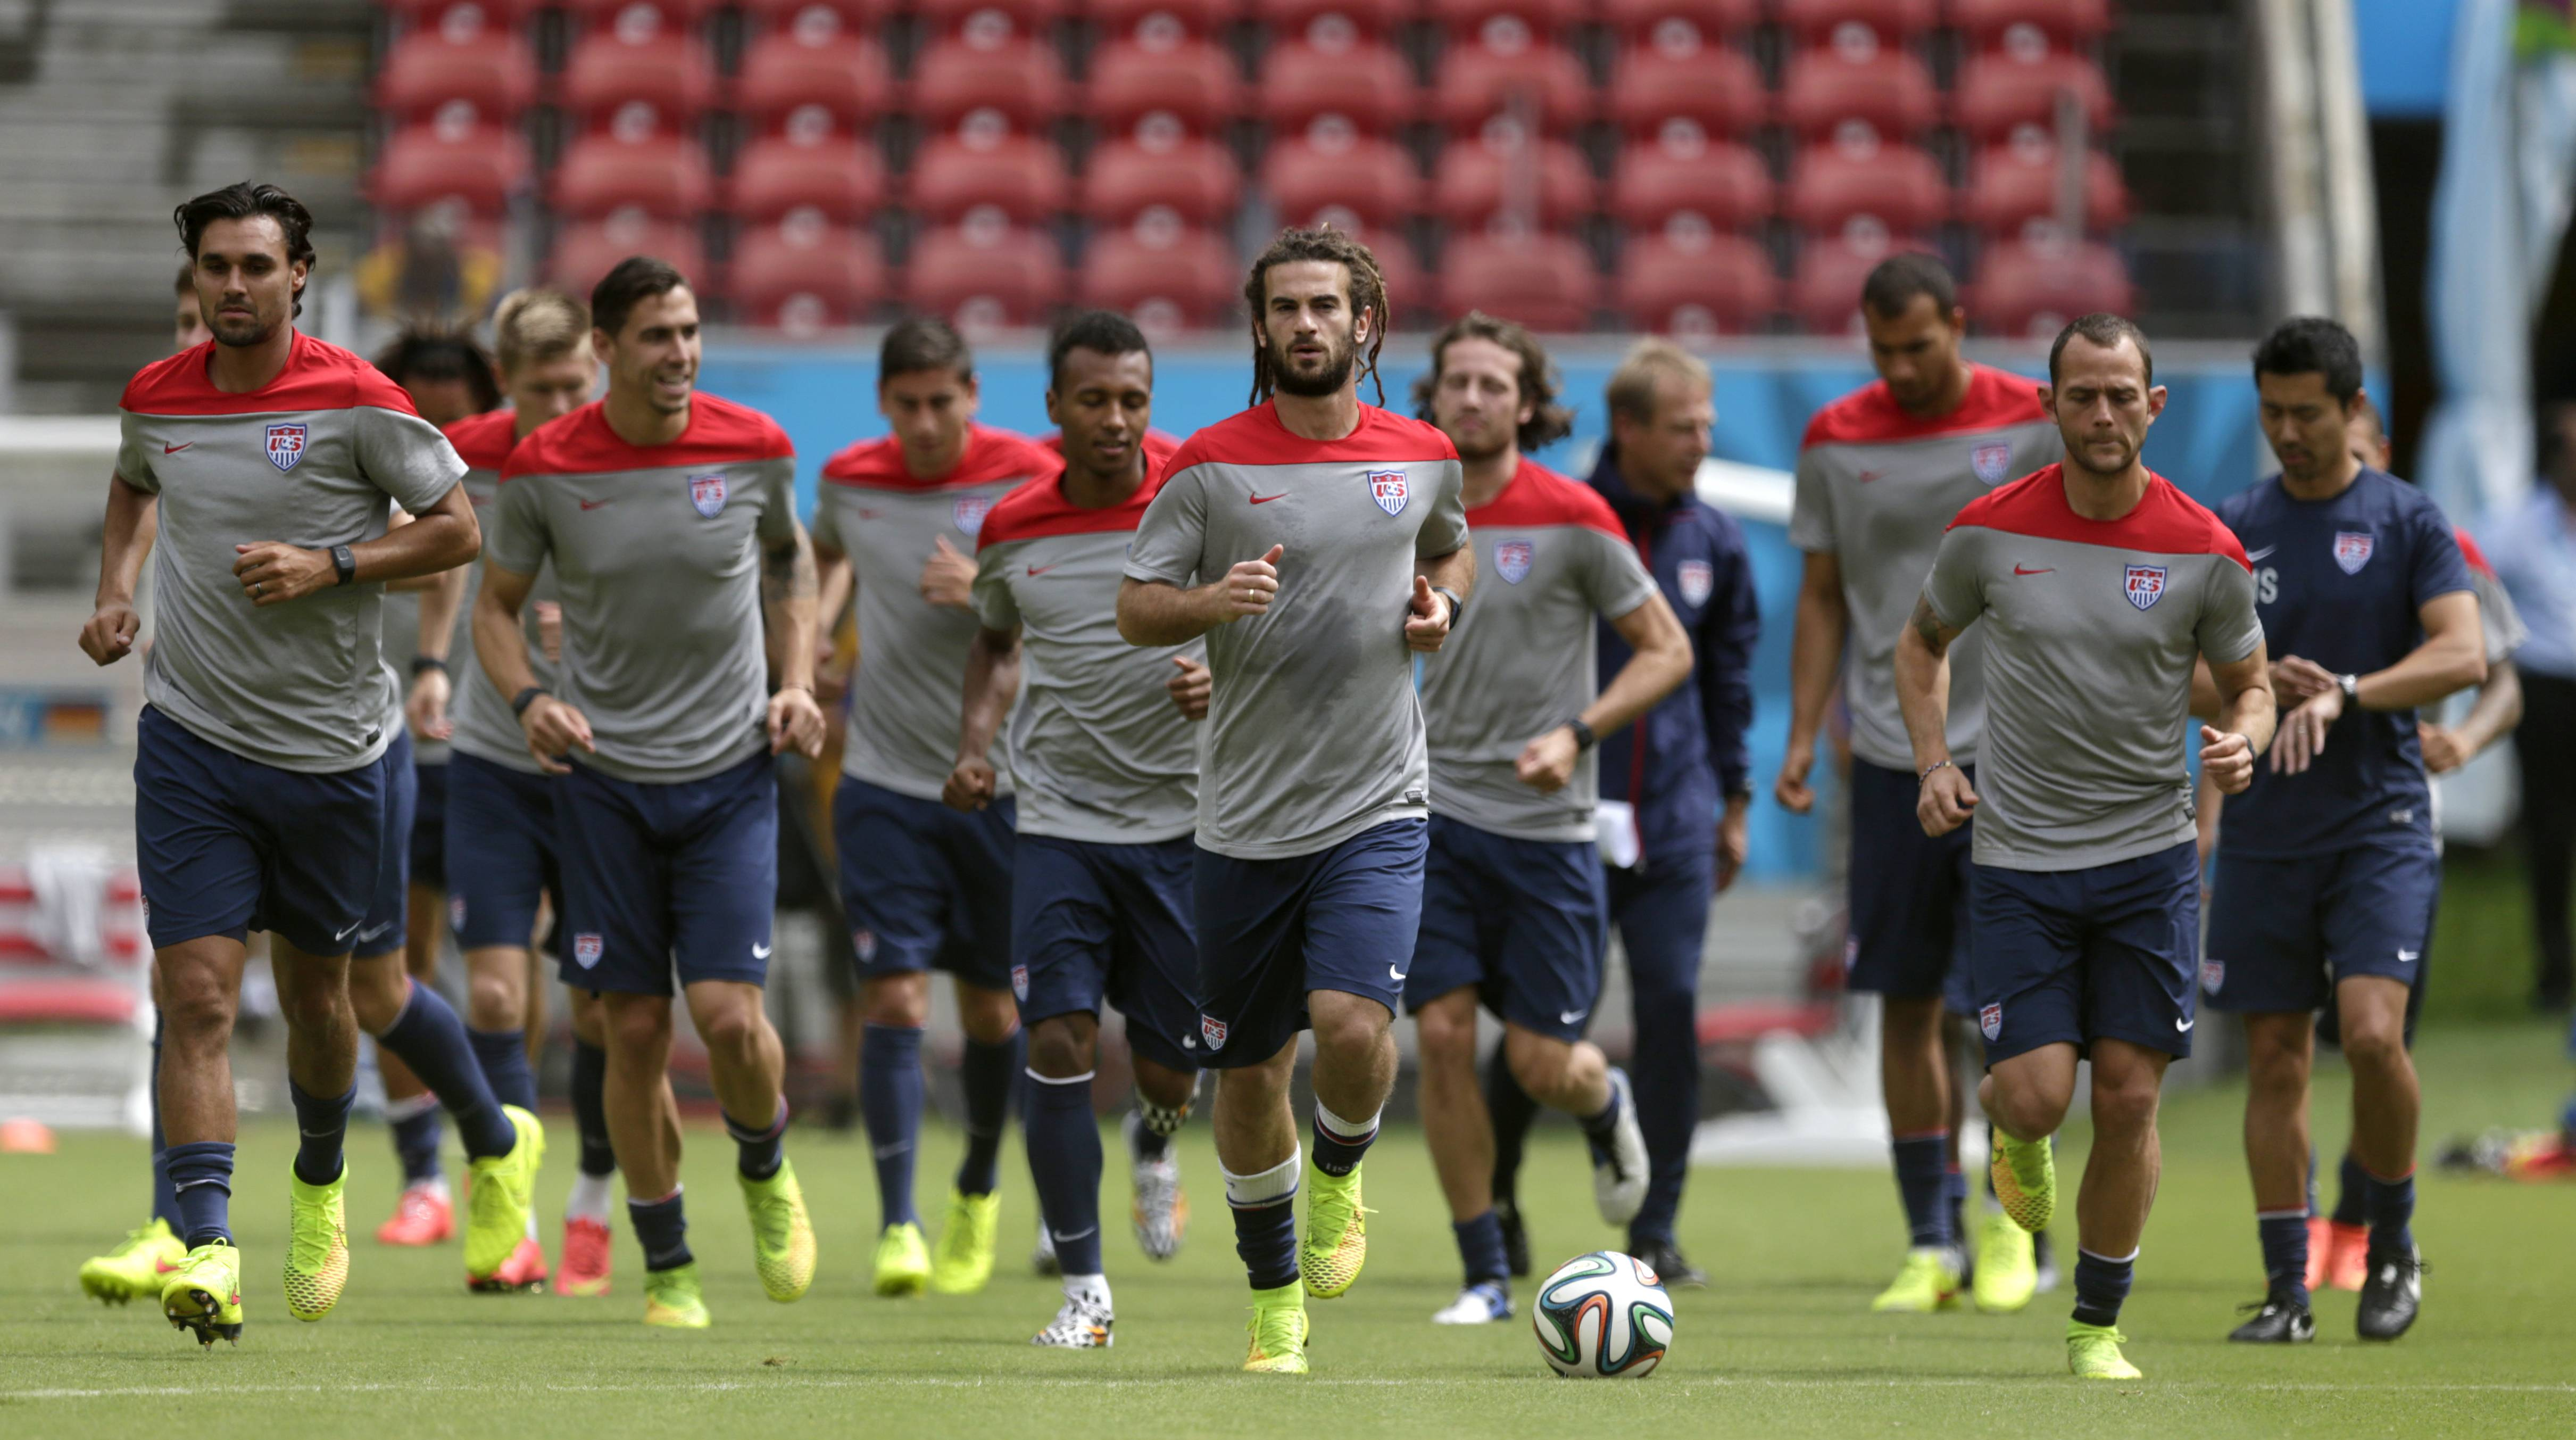 United States' Kyle Beckerman, center, jogs with teammates during a training session in Recife, Brazil, Wednesday, June 25, 2014. The United States will play Germany in group G of the 2014 soccer World Cup on June 26.